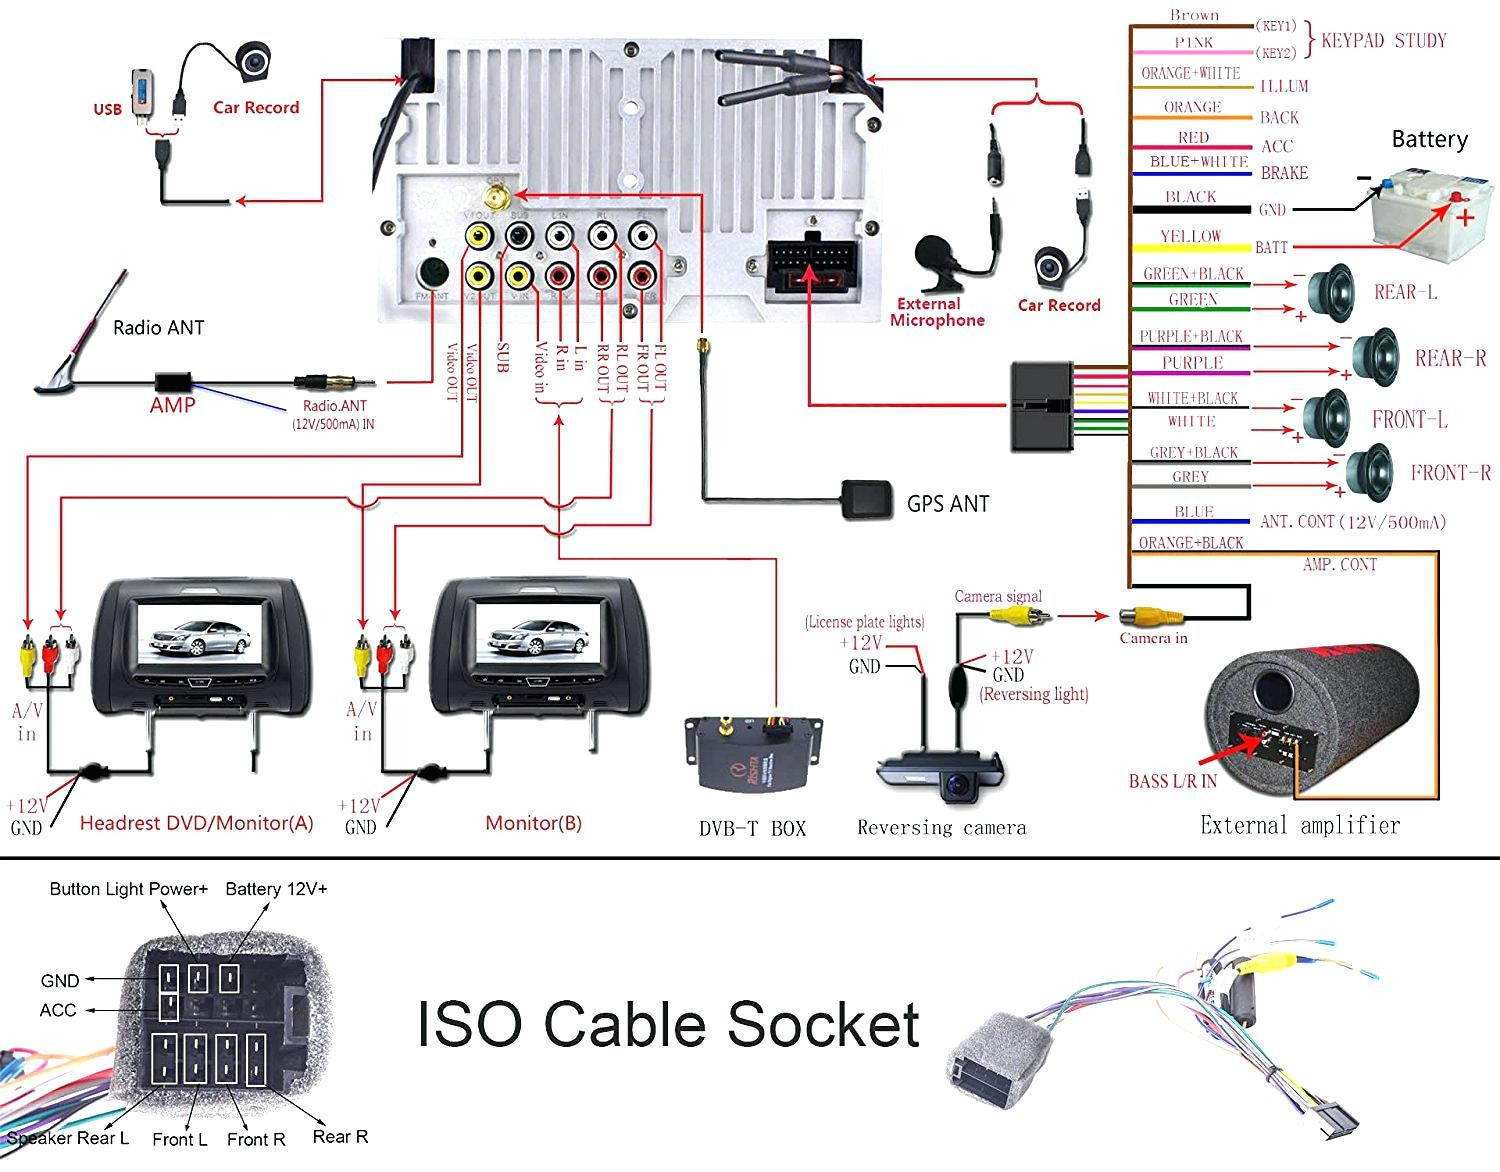 Aswc 1 Wiring Diagram Image Axxess Gmos 04 Full Size Of Archived Category With Post